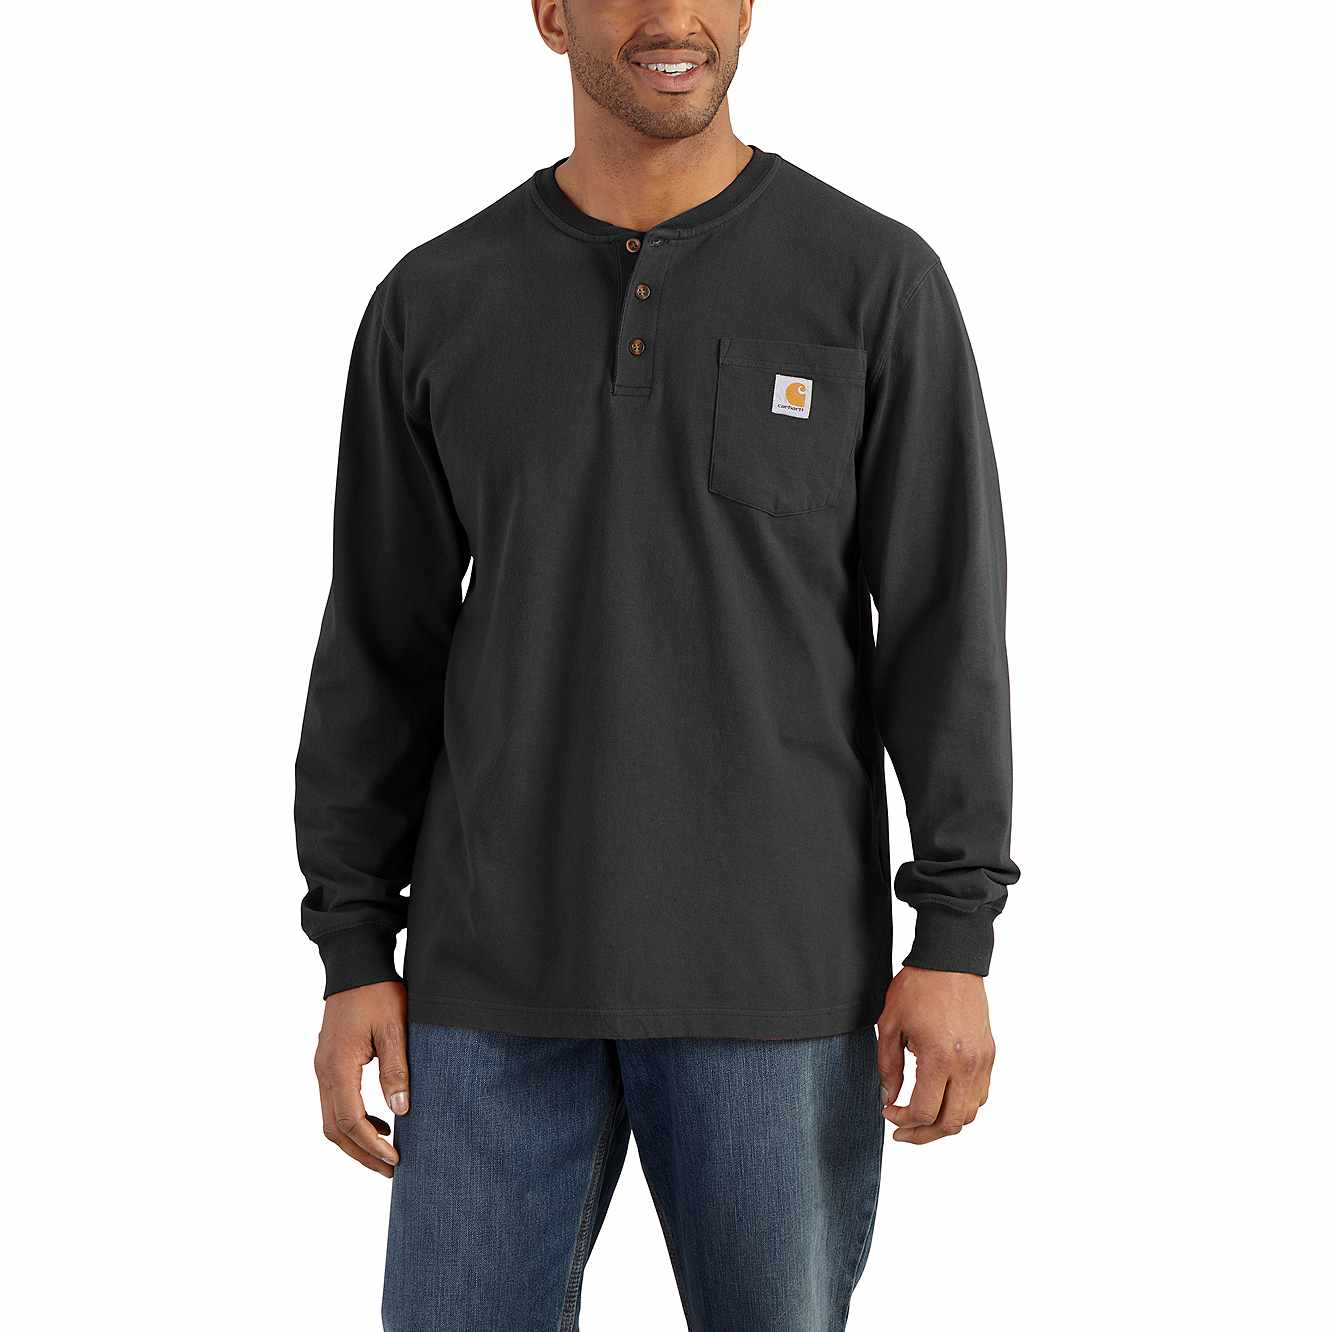 Picture of Loose Fit Heavyweight Long-Sleeve Pocket Henley T-Shirt in Black